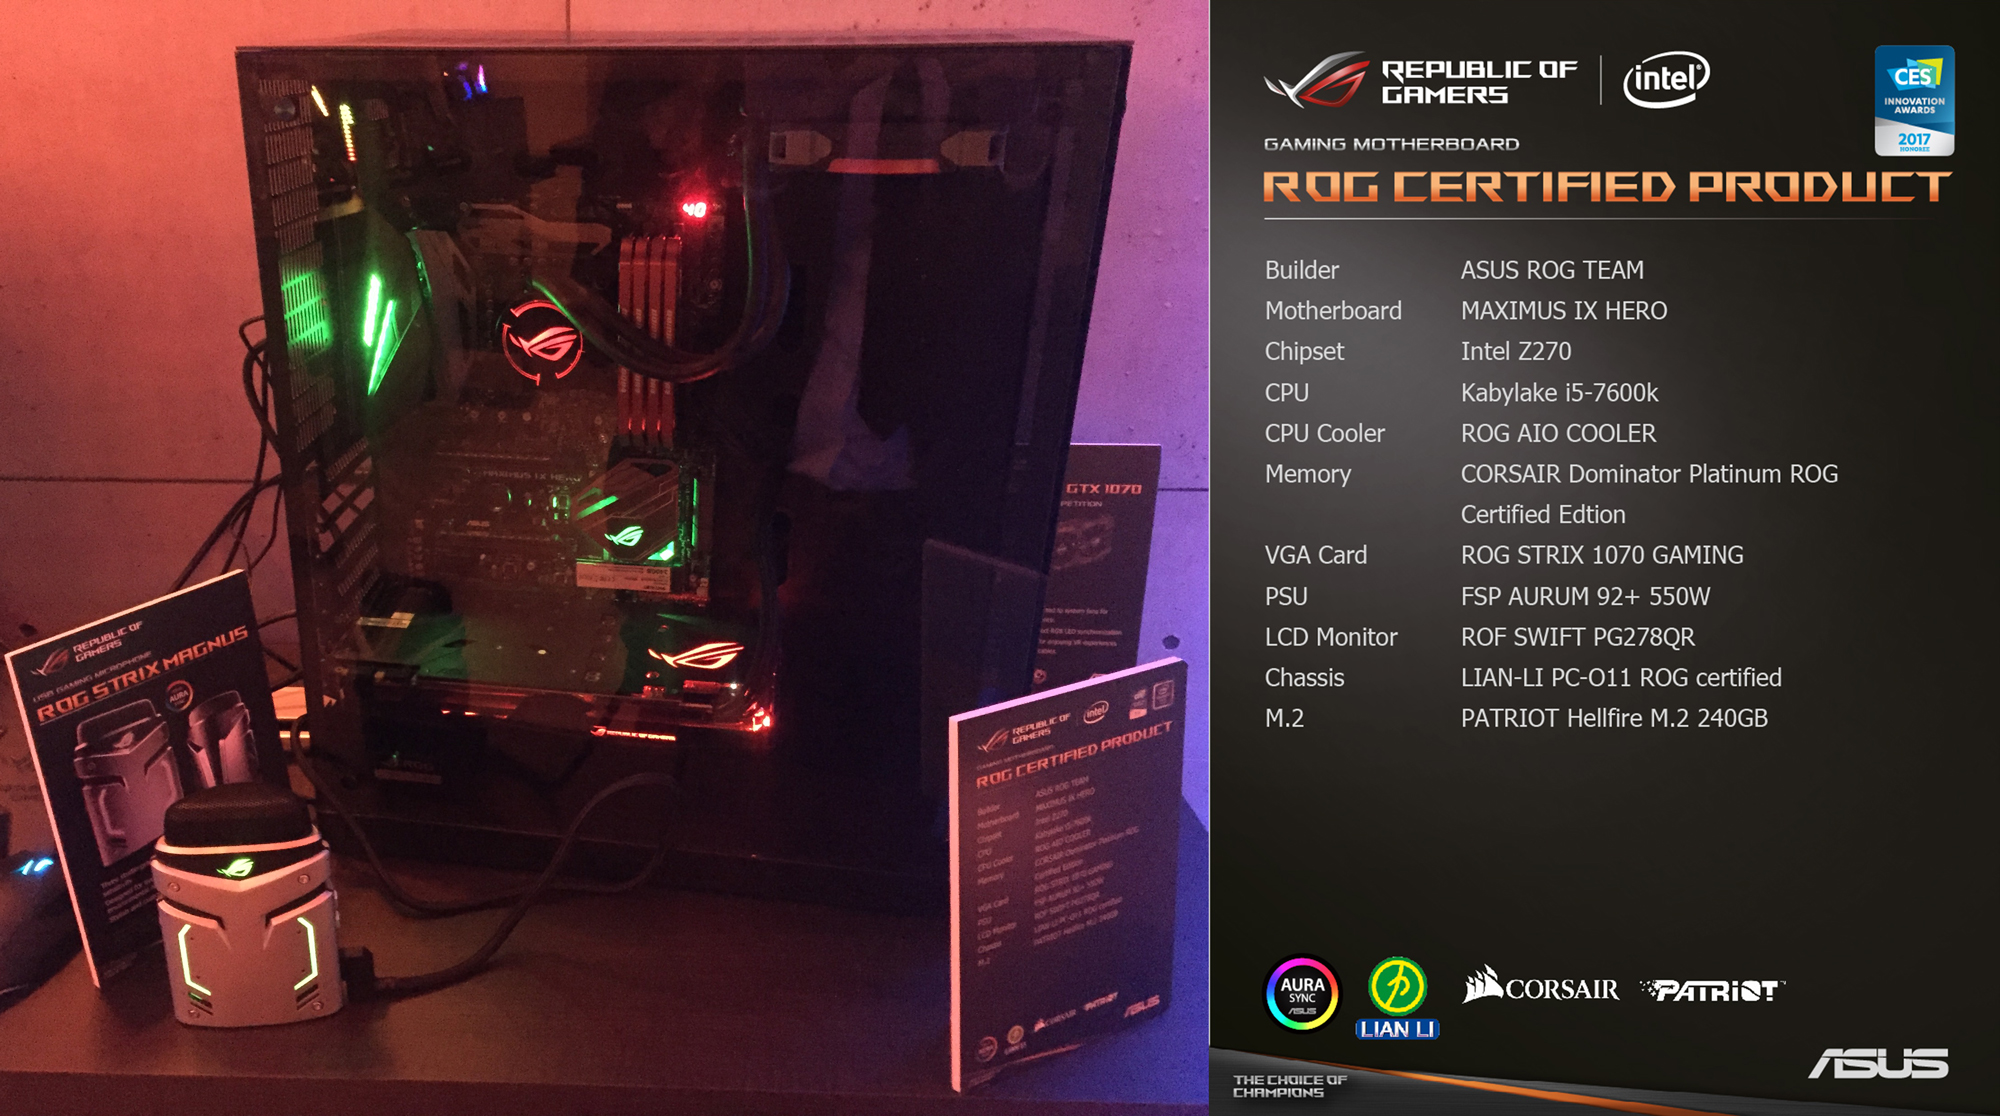 CES-2017---ROG-CERTIFIED-SYSTEM-1